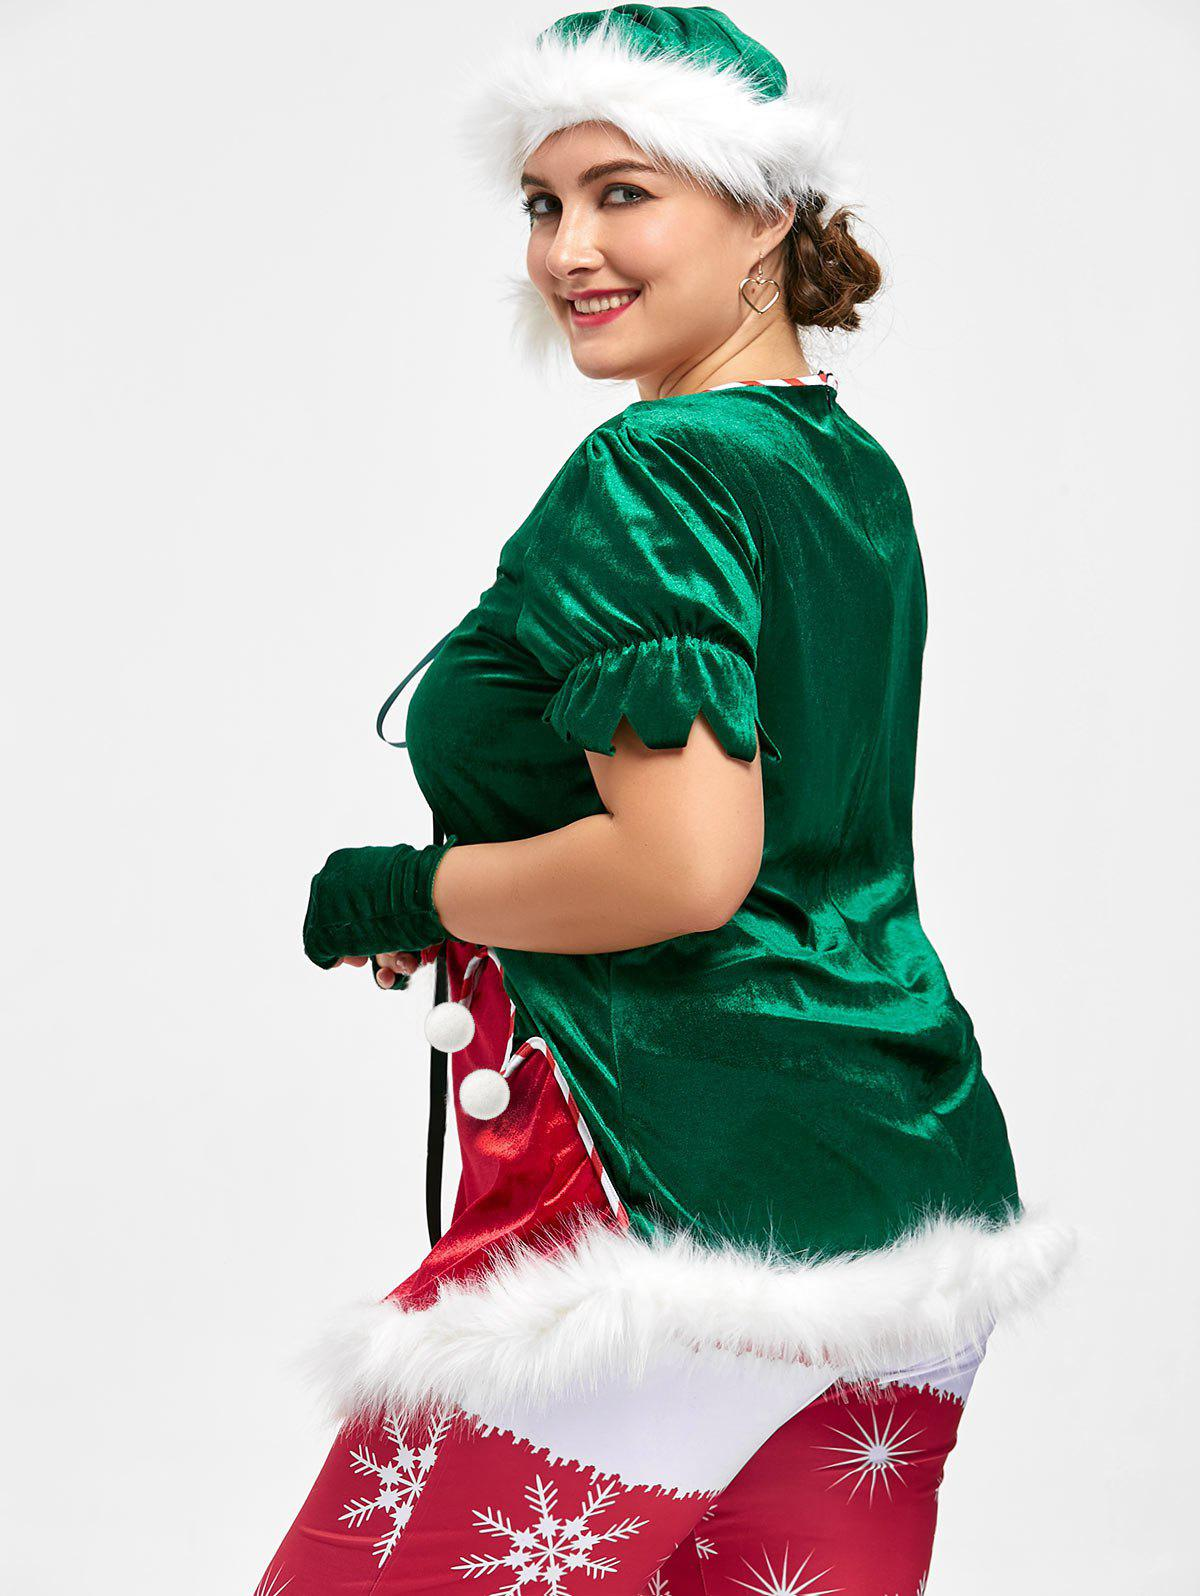 2018 Christmas Plus Size Top with Santa Claus hat RED ...